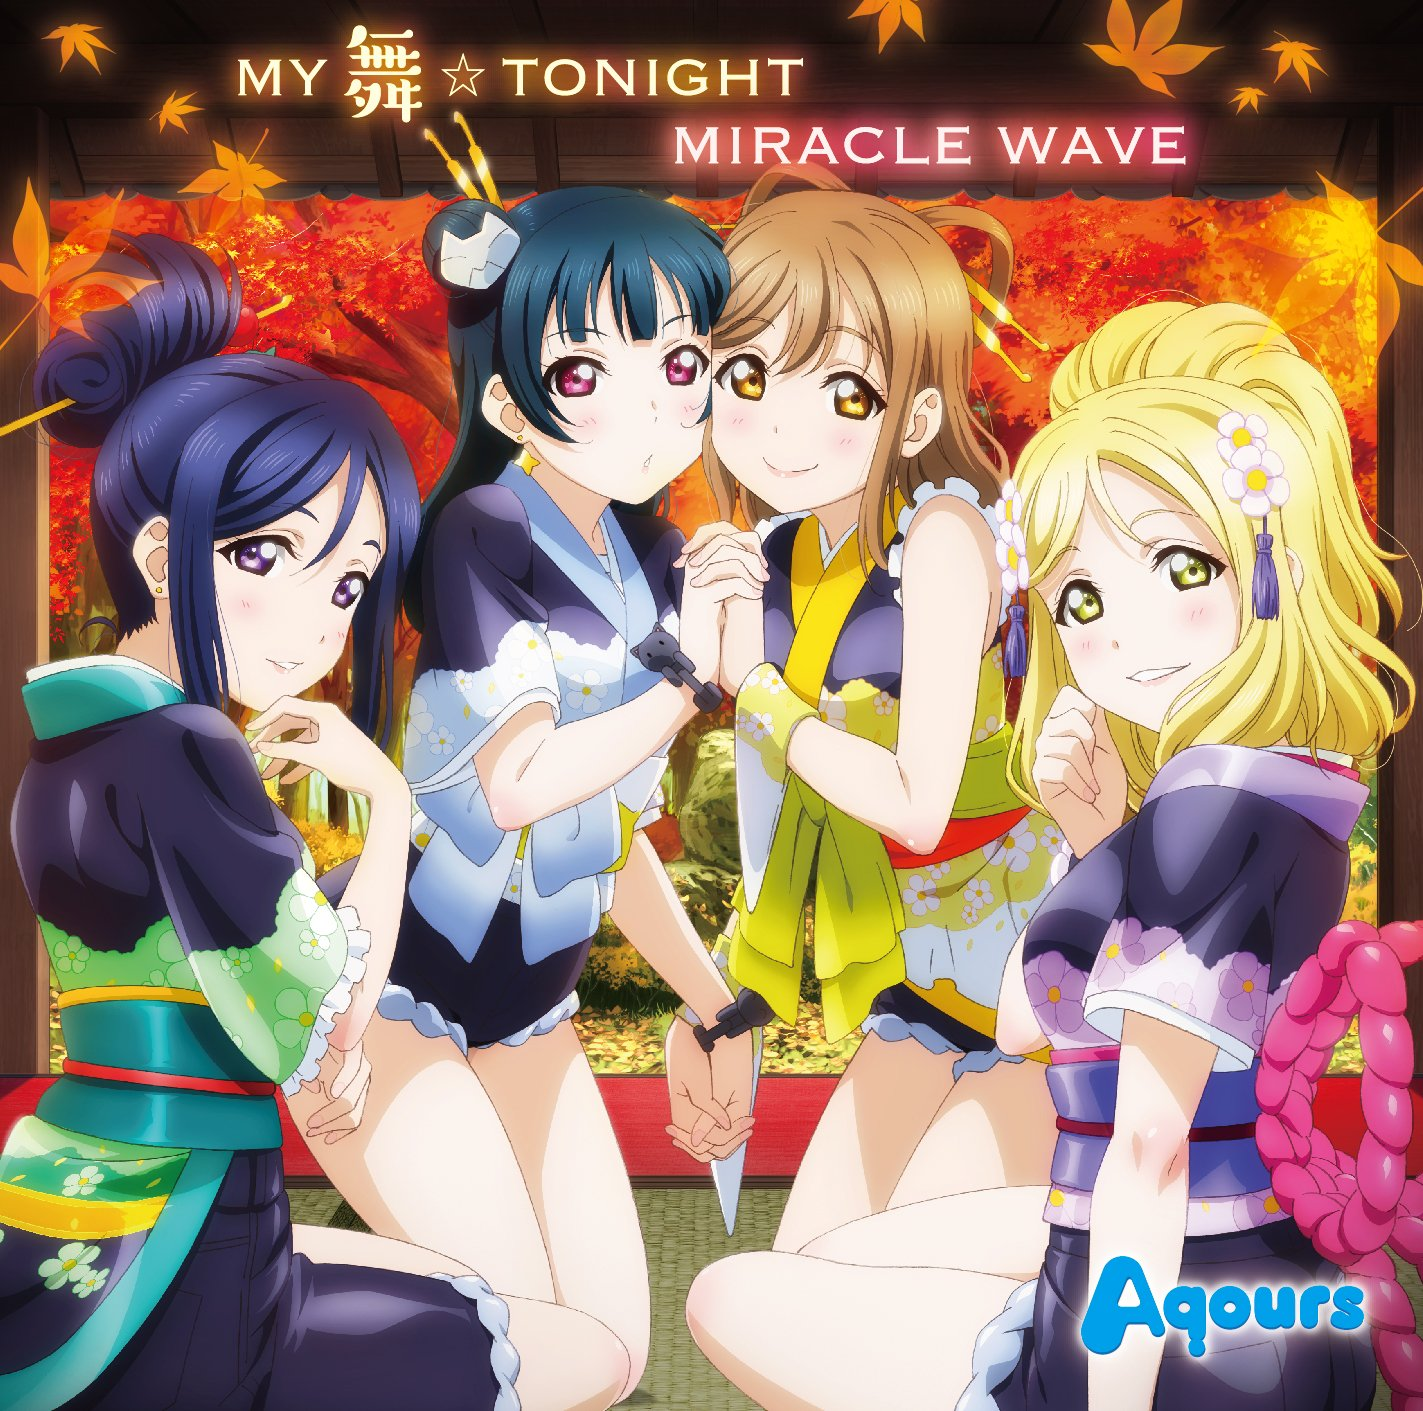 MIRACLE WAVE